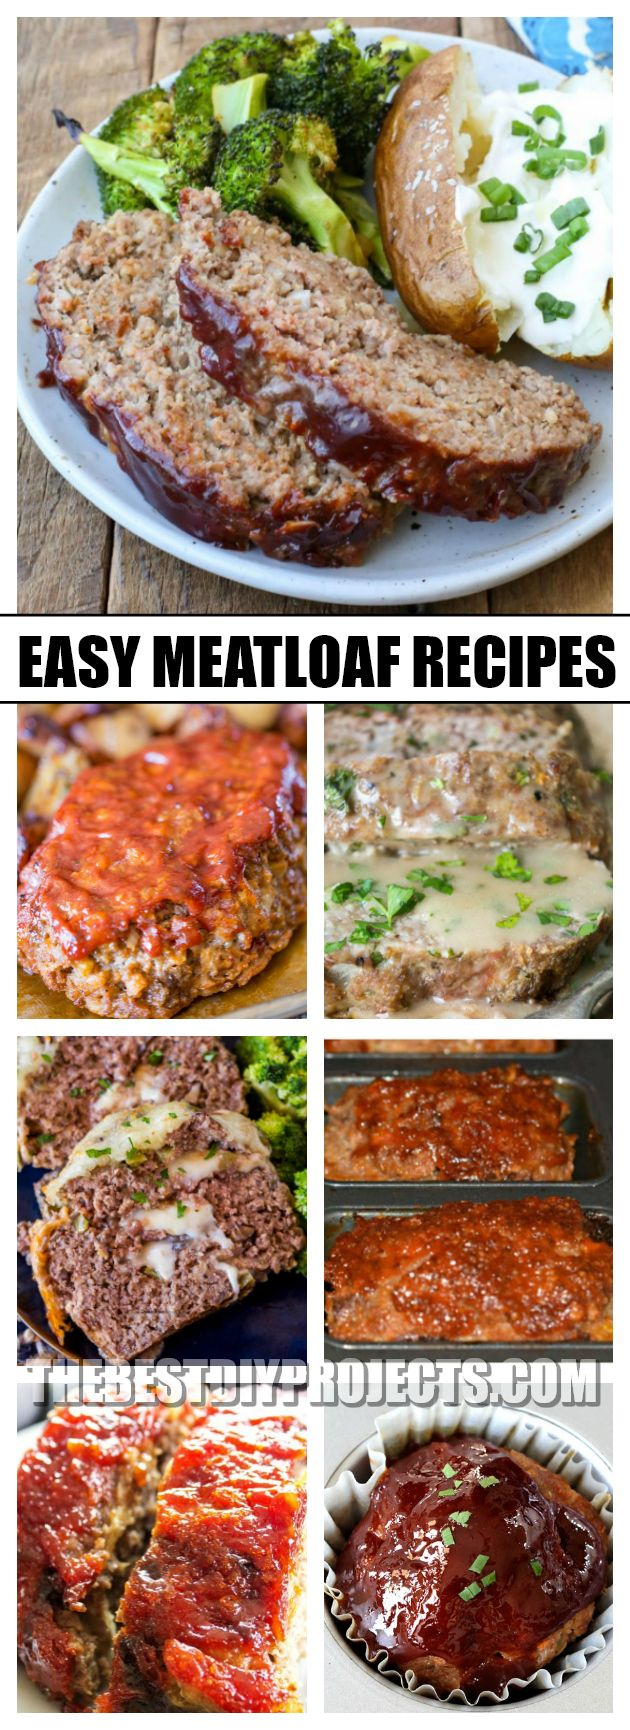 These super easy to make Meatloaf Recipes are the perfect weeknight dinner option for busy families! They come out of the oven tender, juicy, and are packed with delicious flavor!